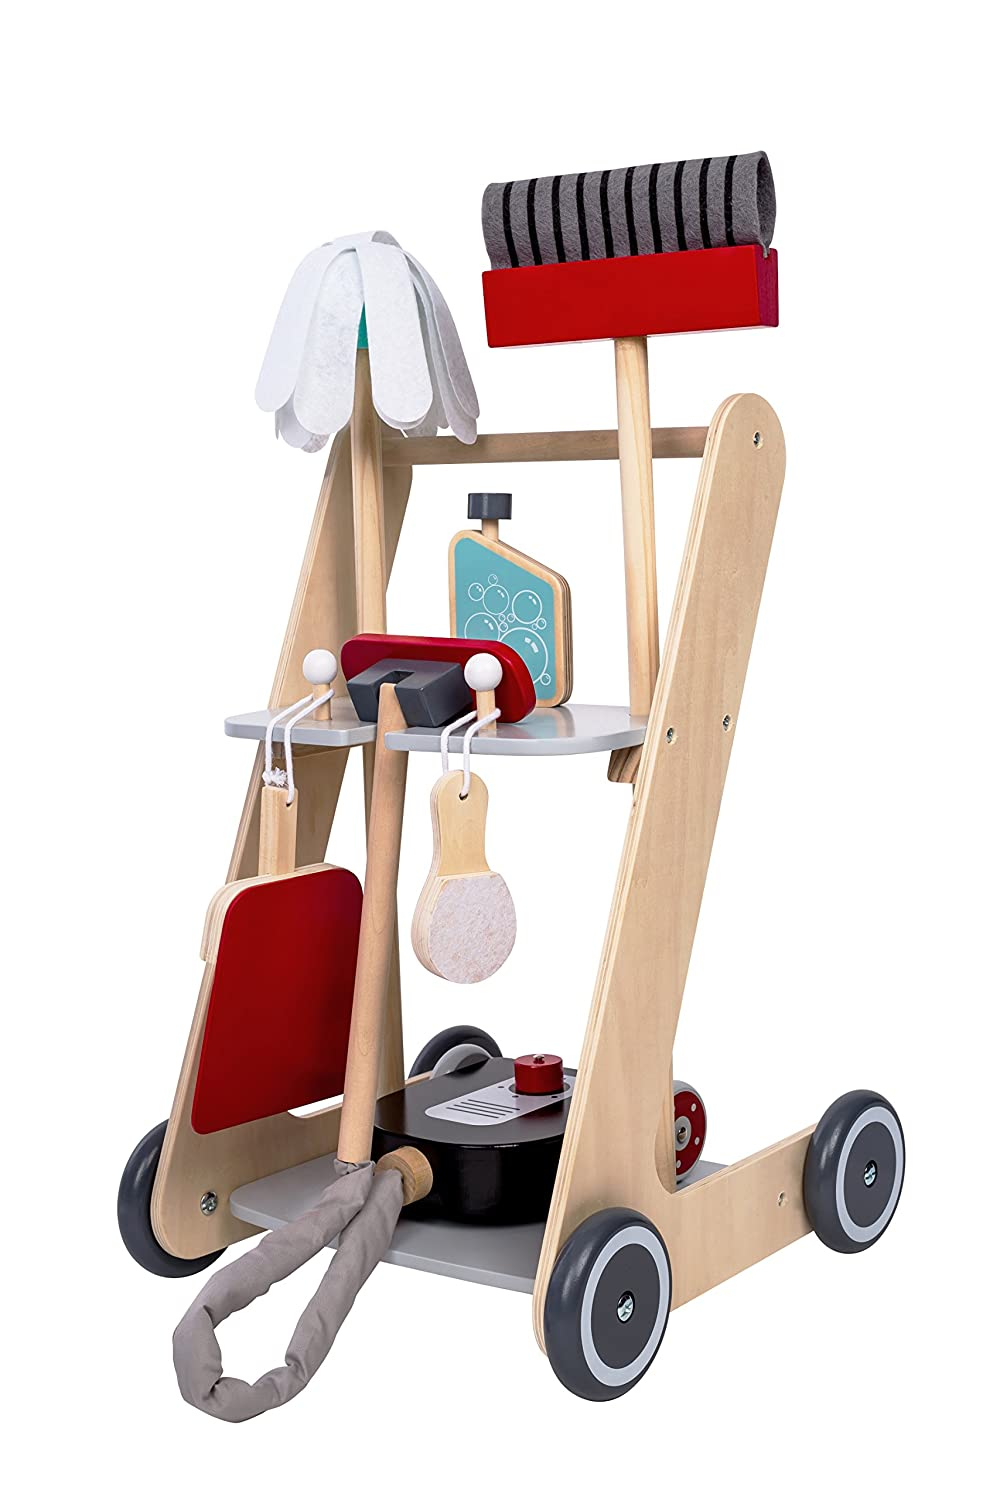 MMP Living Pretend Play Cleaning Cart - 7 Pieces, Wood